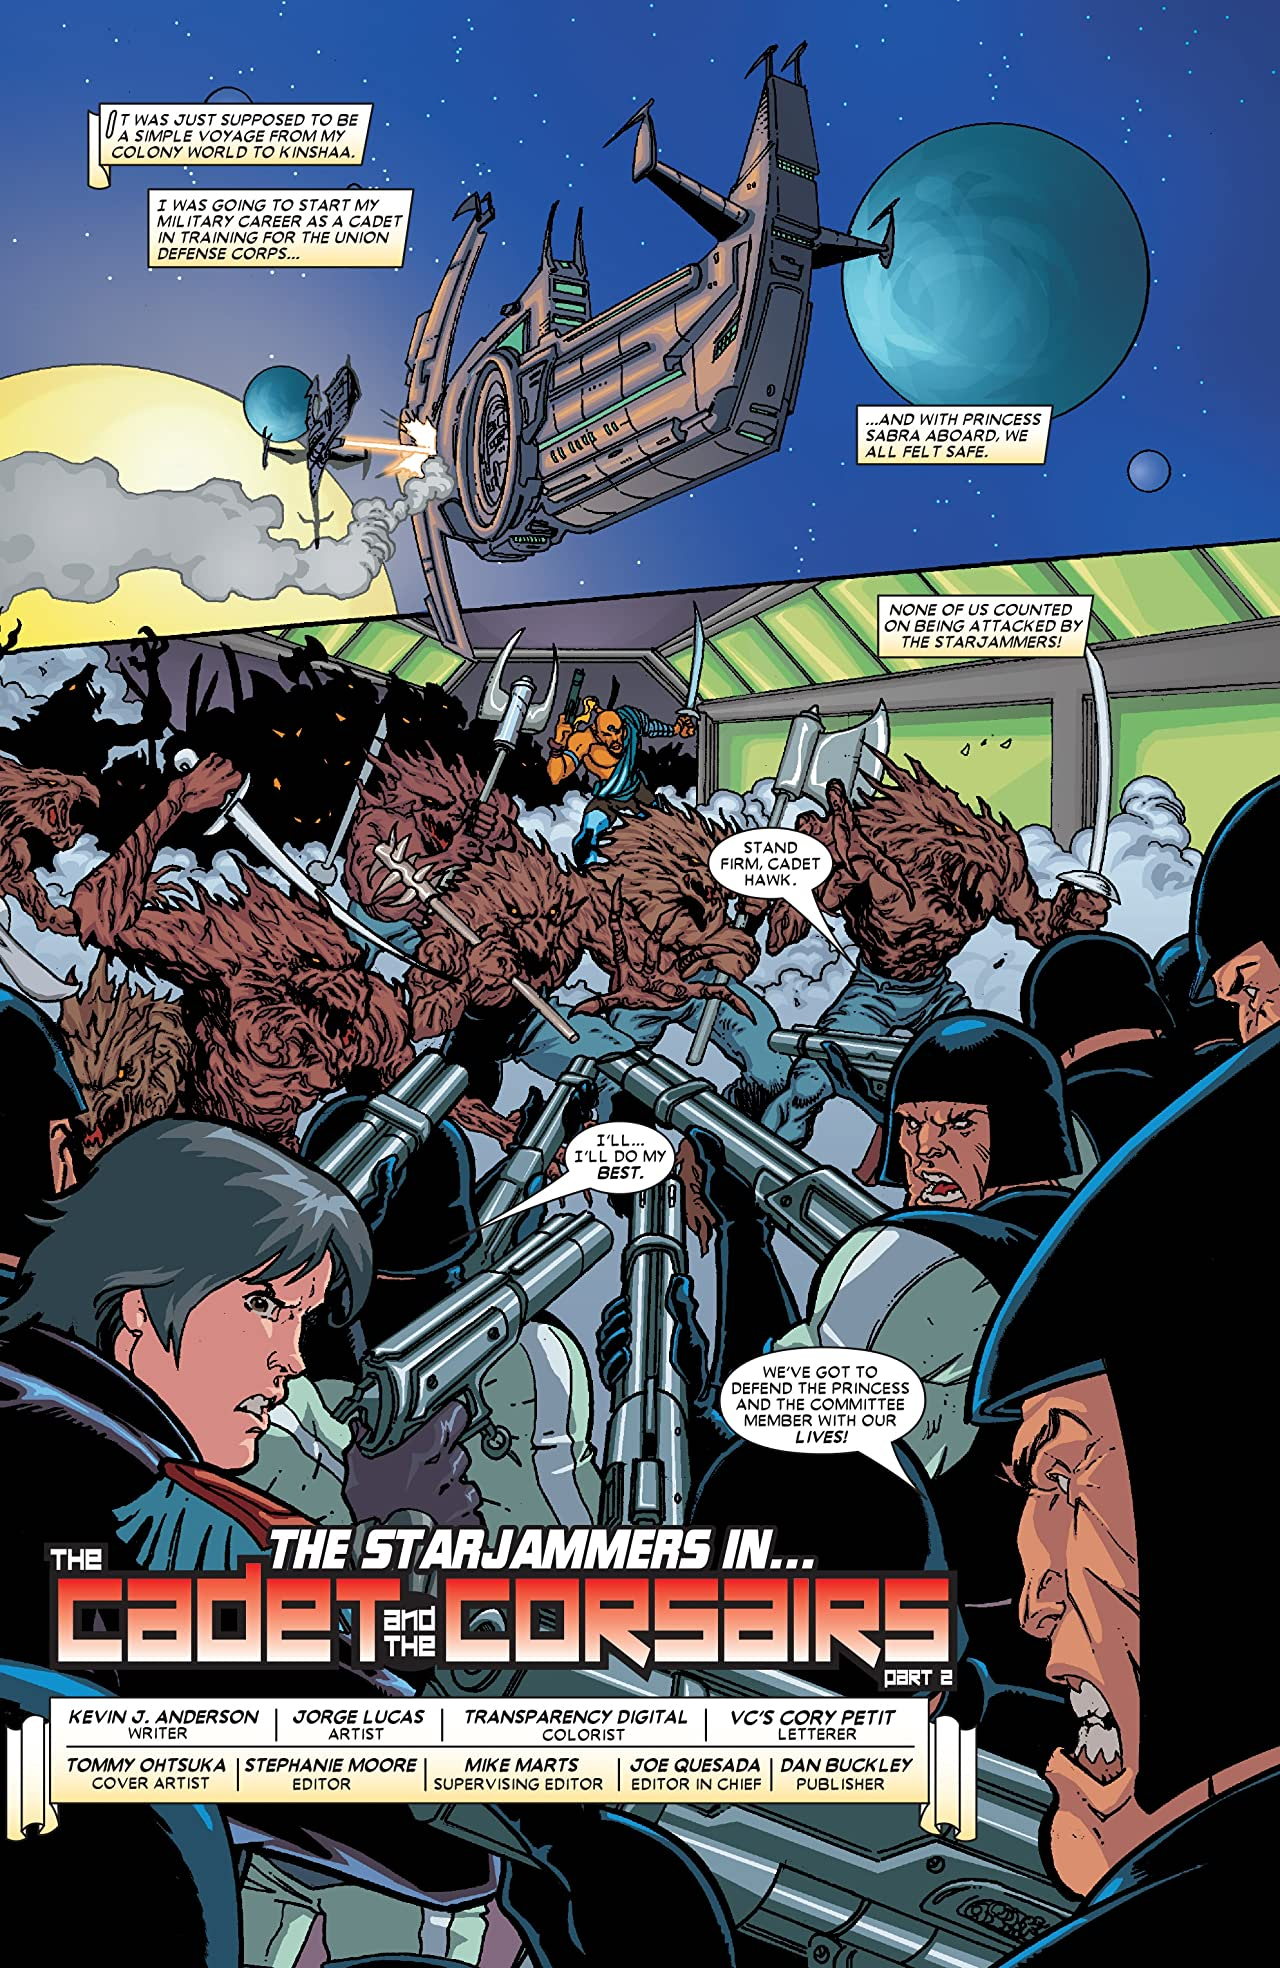 Starjammers (2004) #2 (of 6)